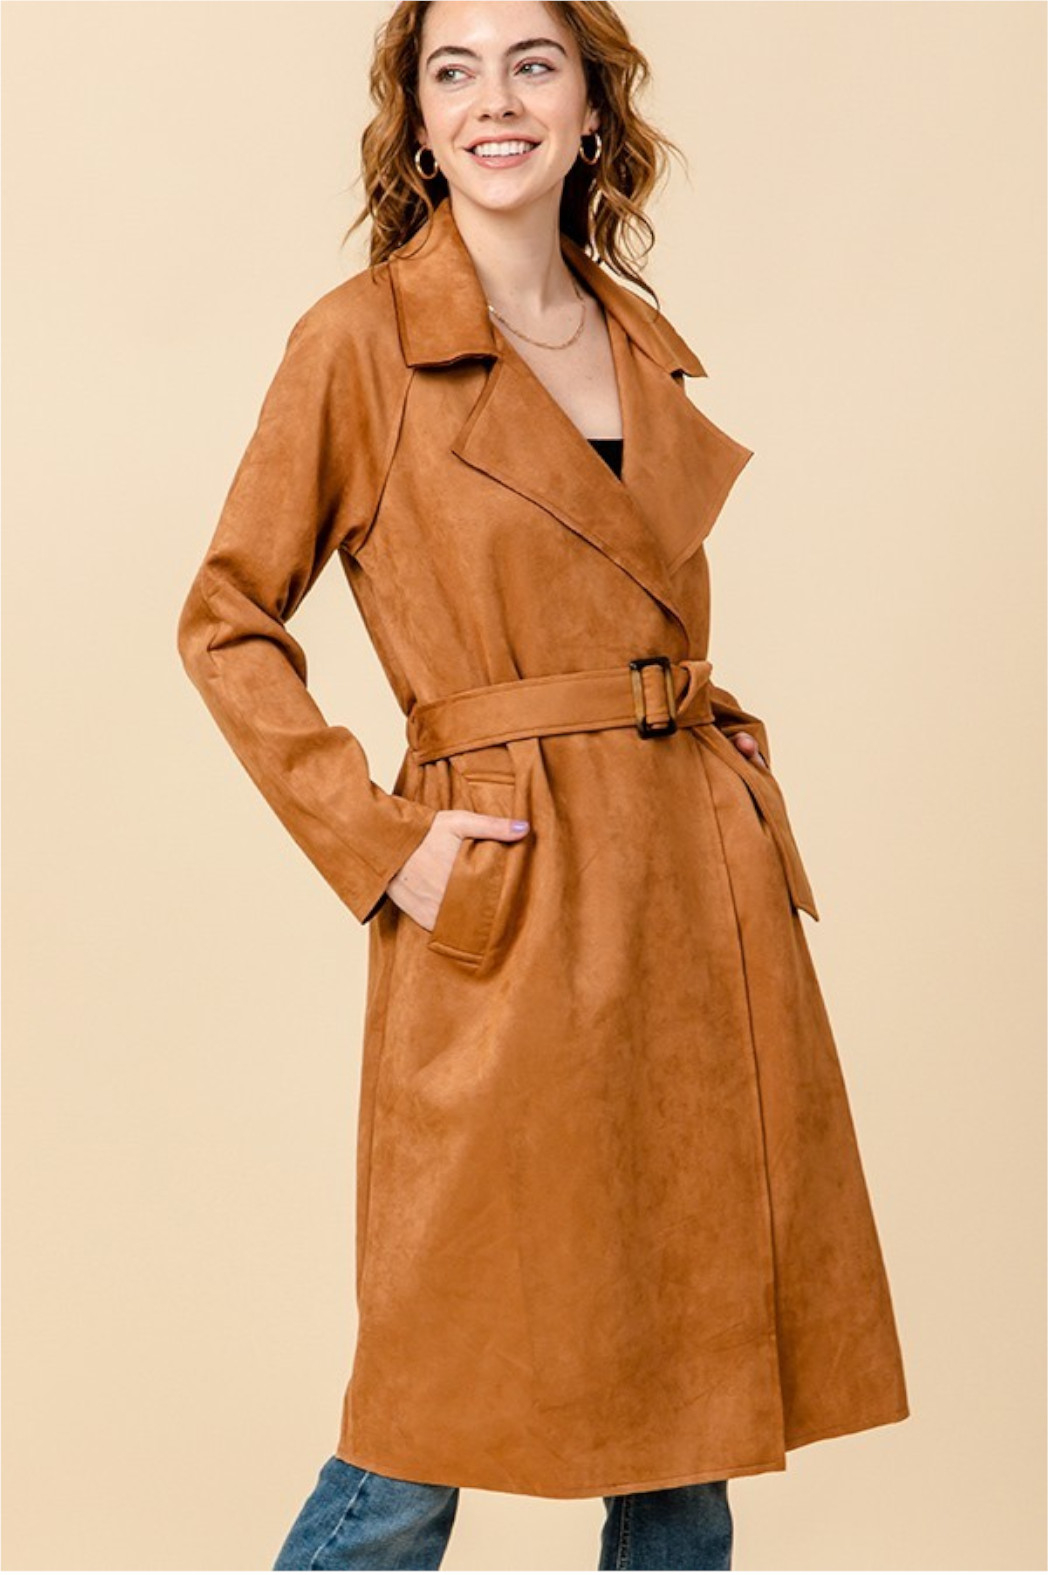 HYFVE Camel Suede Trench Coat - Main Image